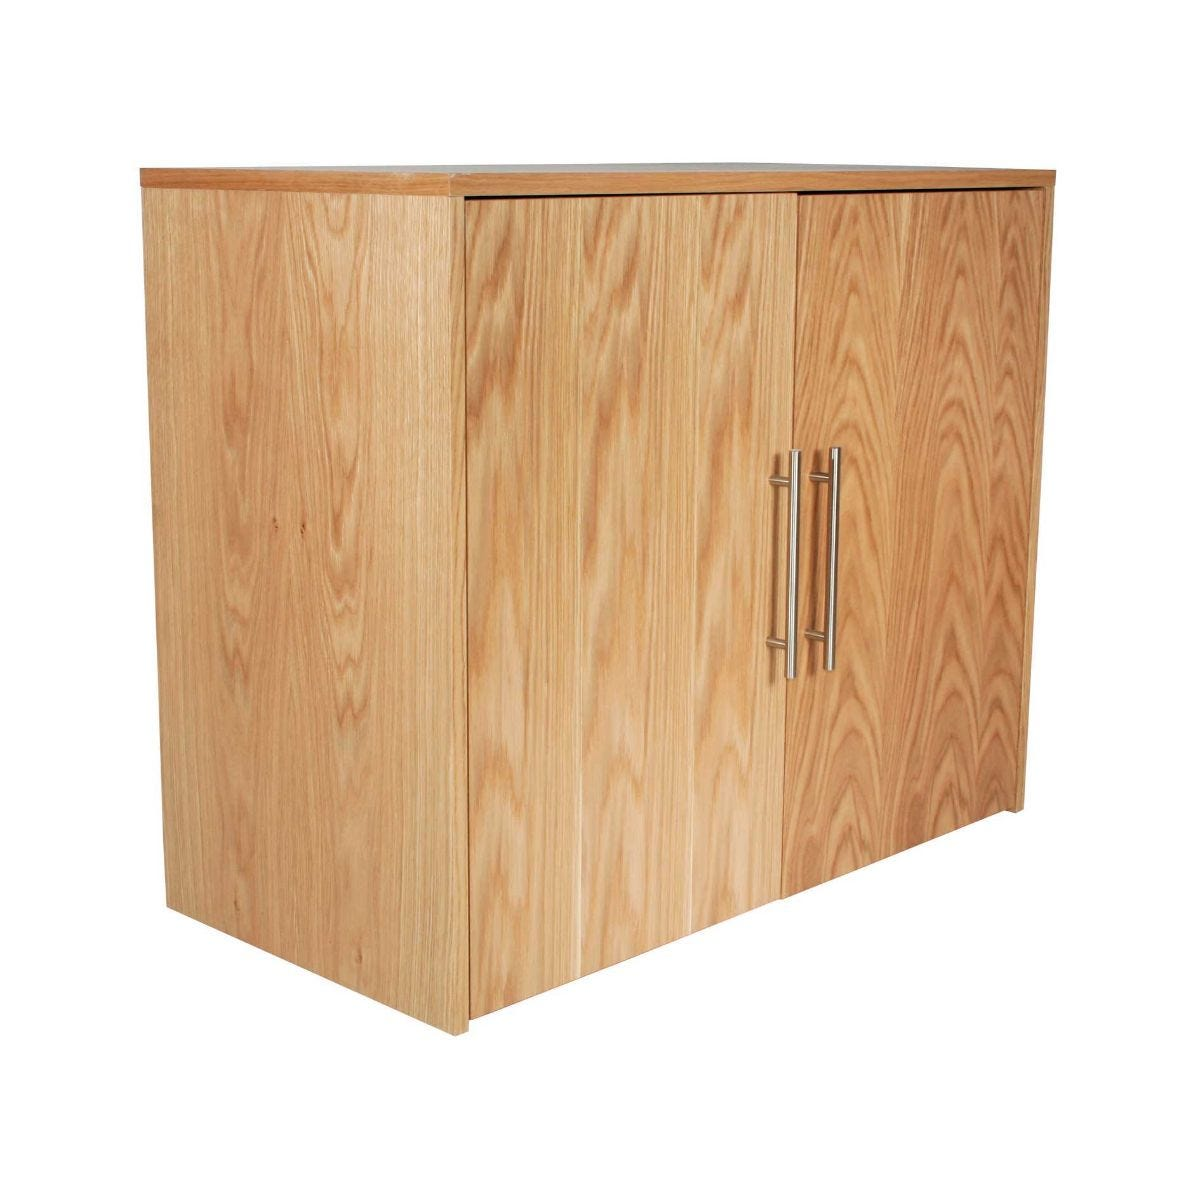 Oakwood AW6328-WCB Cupboard H740xW900xD440mm